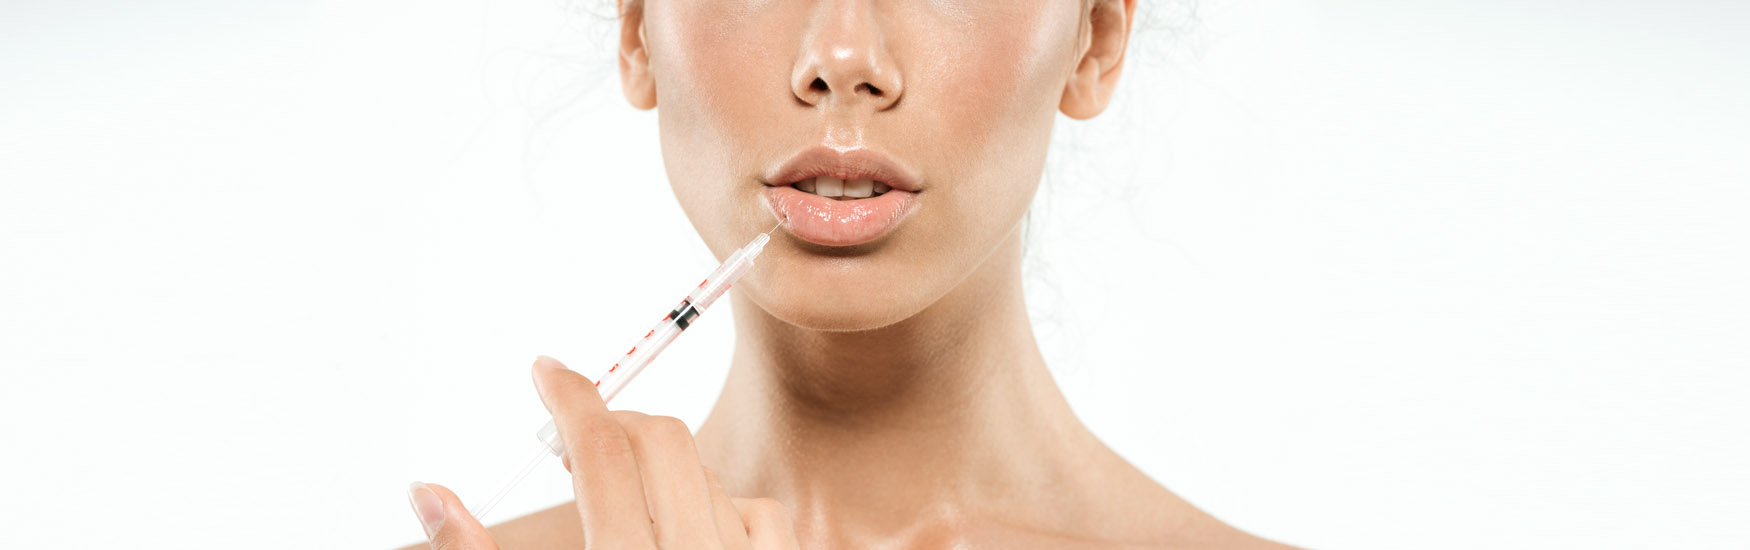 Botox and Fillers in the Philippines | Belo Medical Group